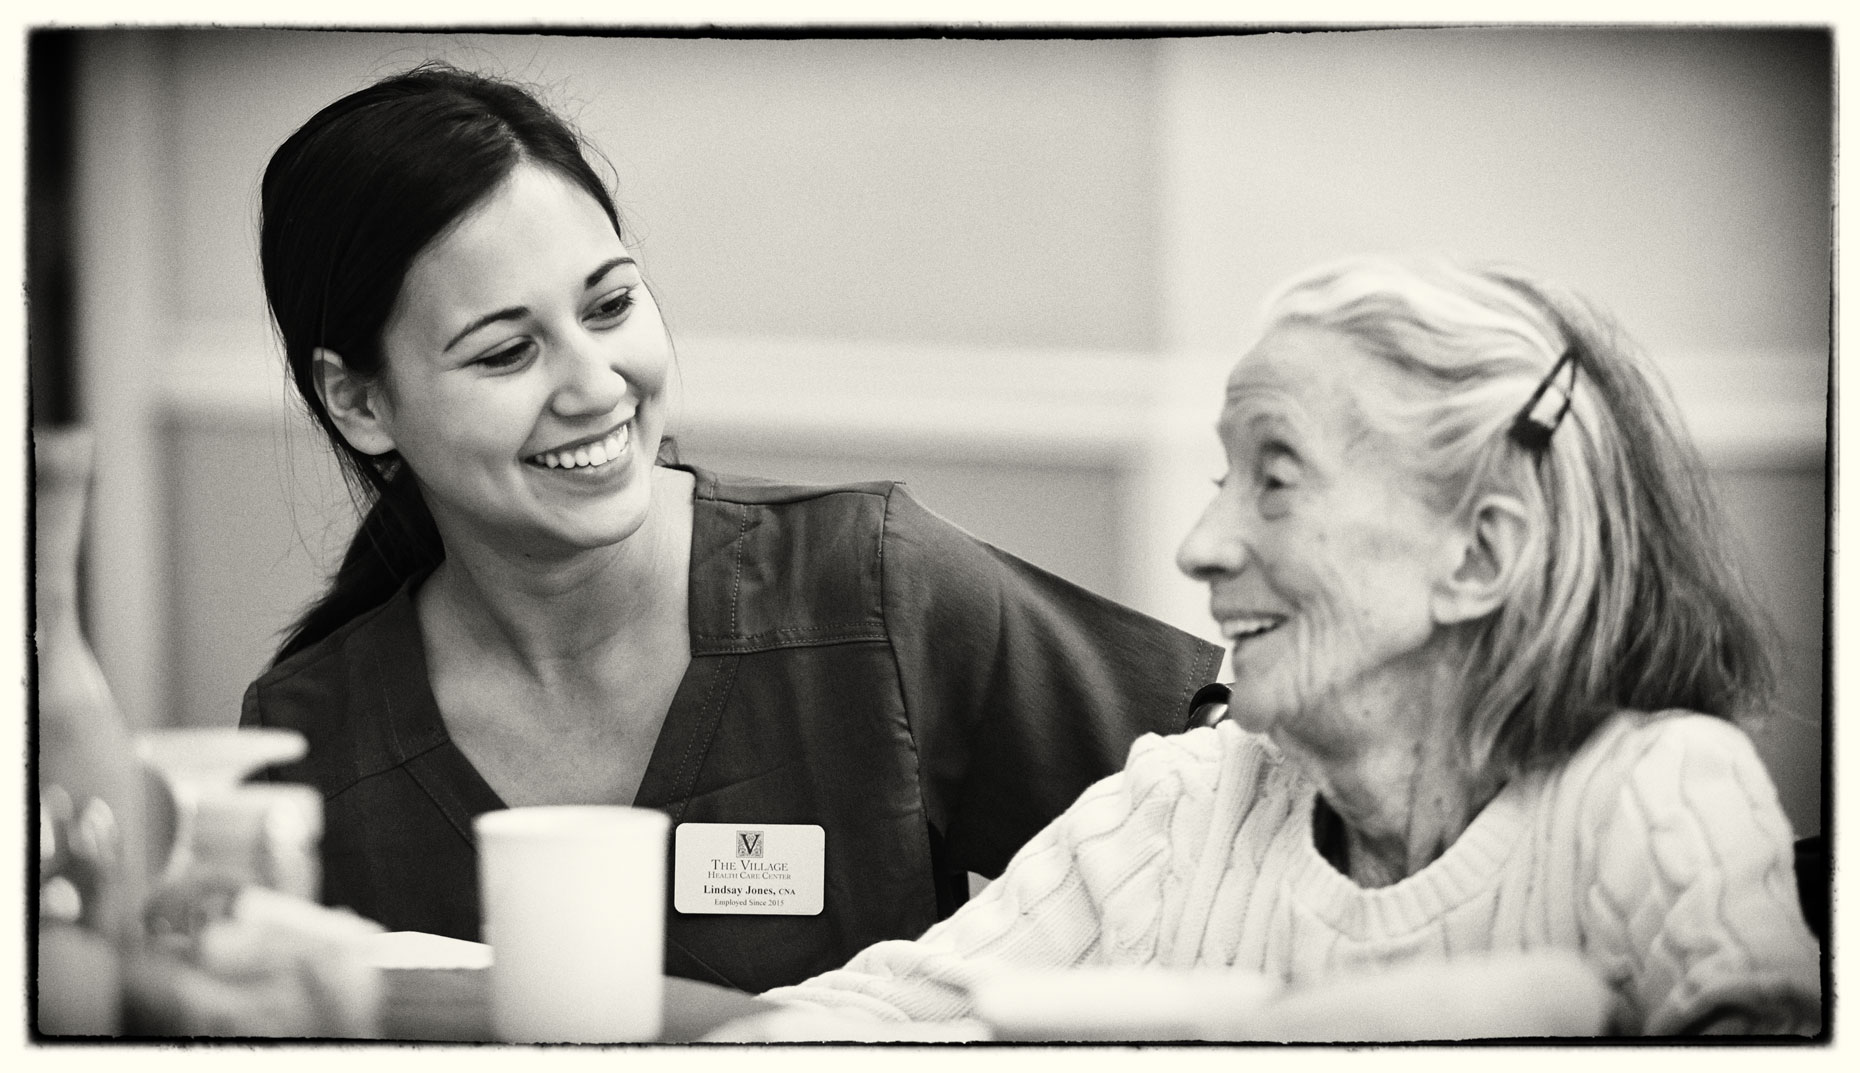 Healthcare worker/Senior woman/care facility/lifestyle photo